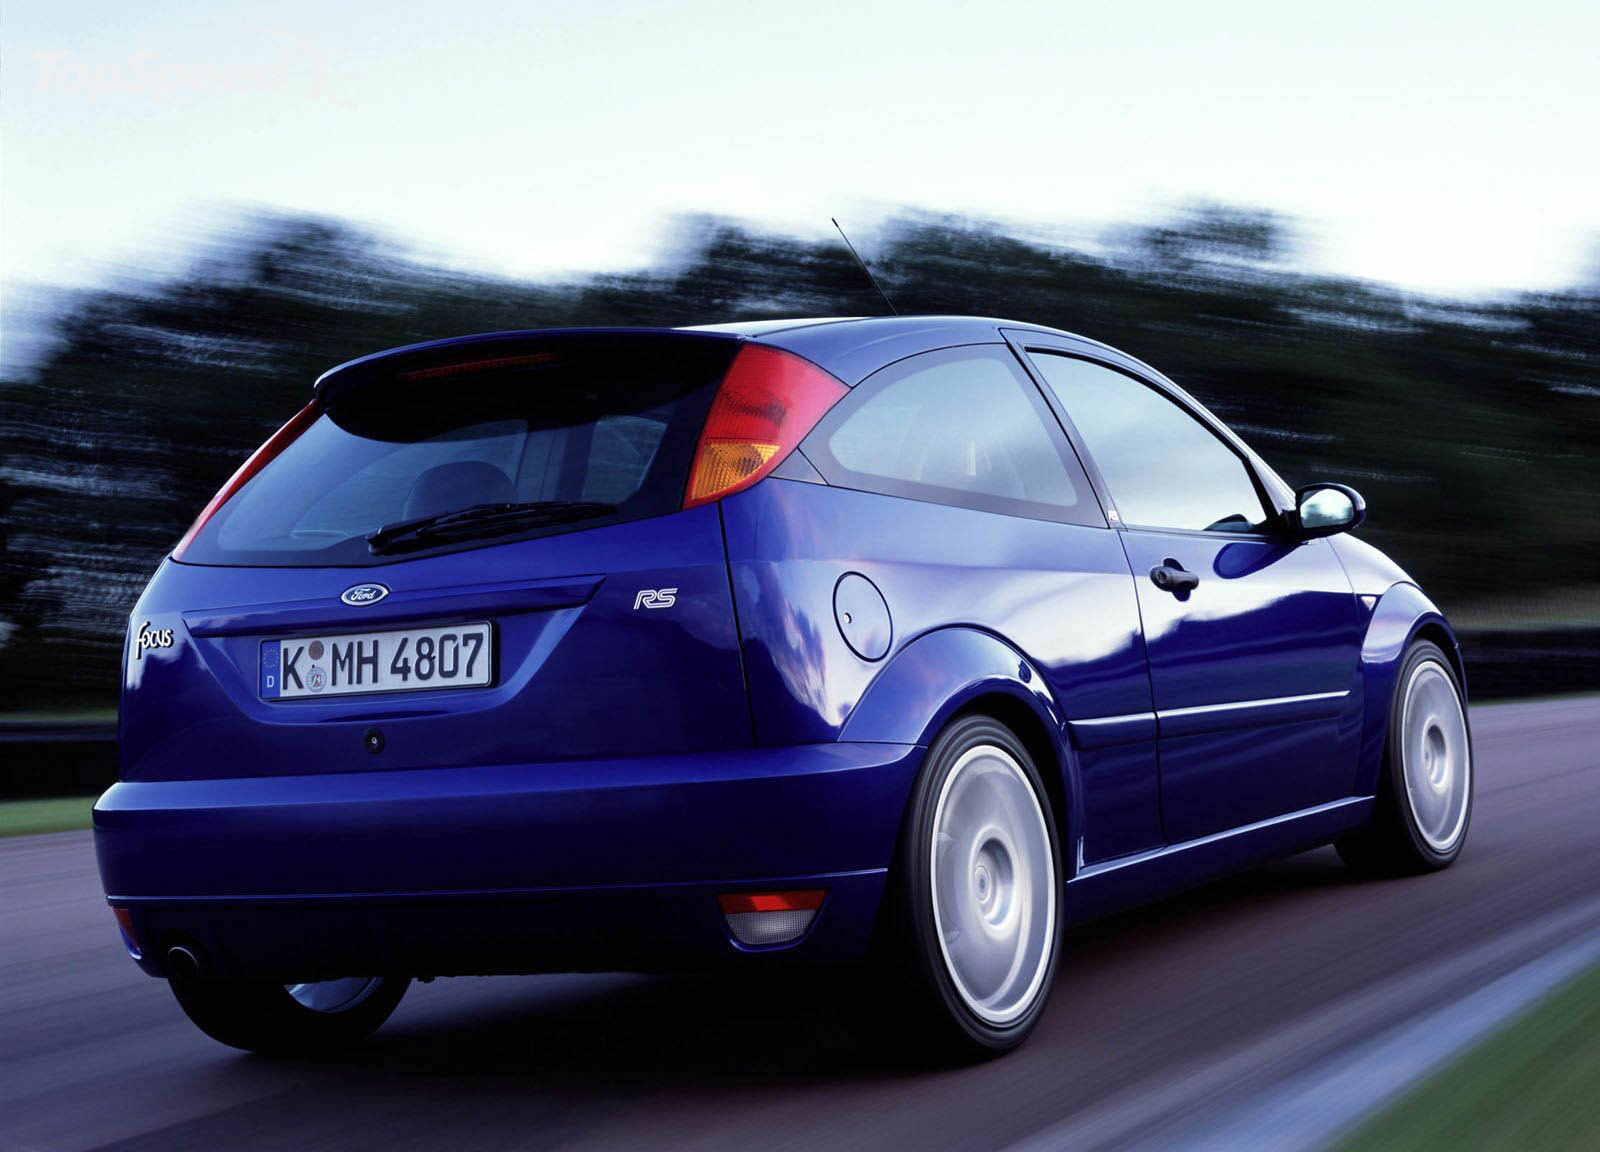 2002 2003 ford focus rs picture 4859 car review top speed. Black Bedroom Furniture Sets. Home Design Ideas